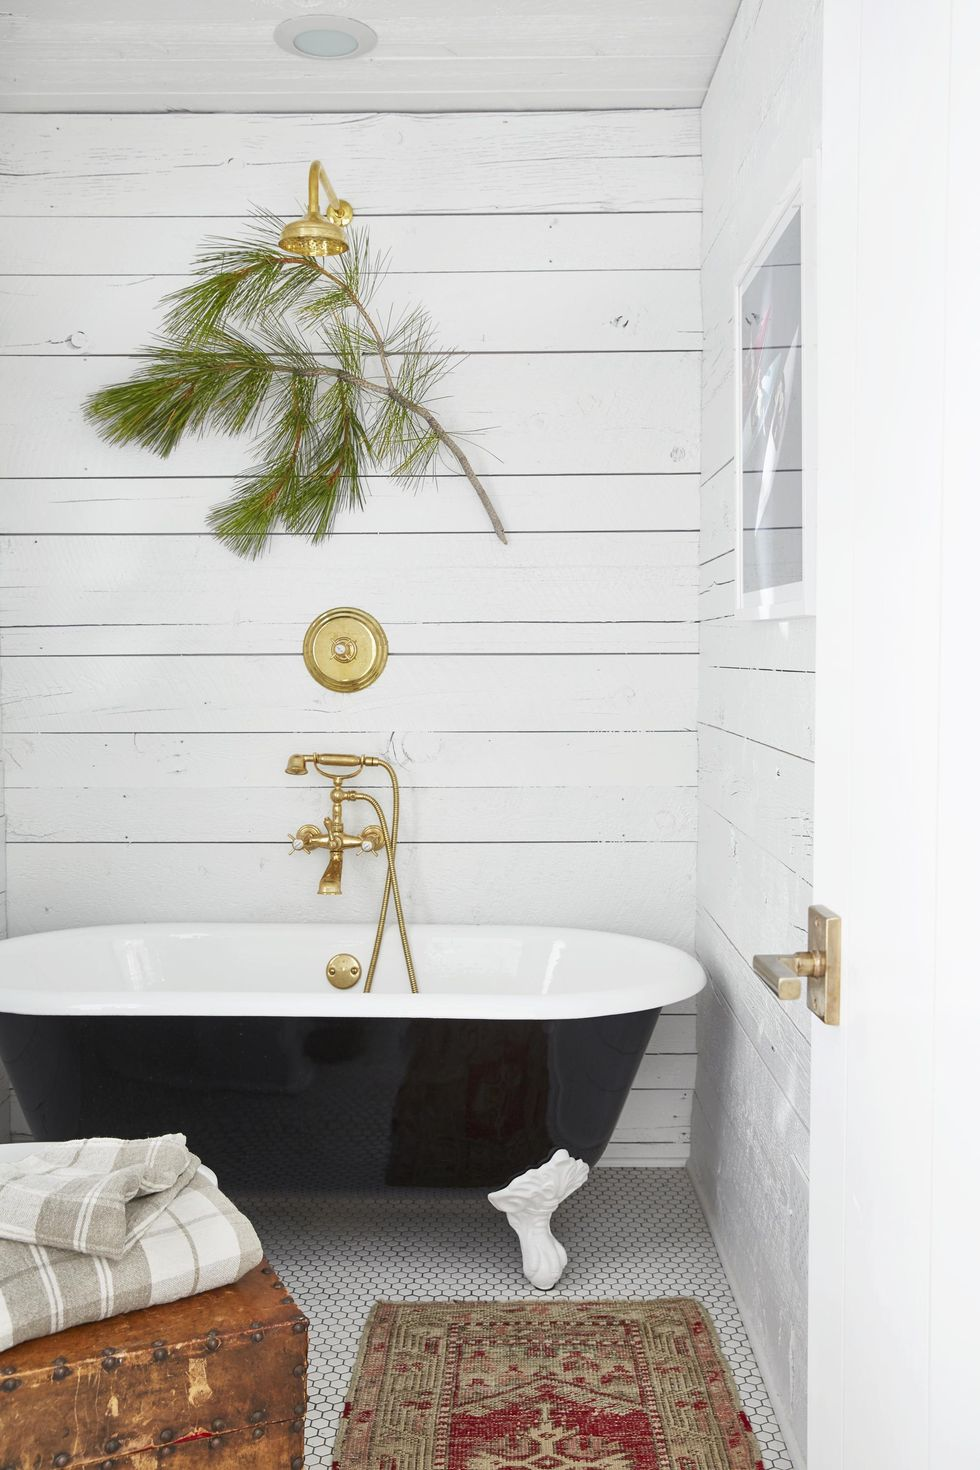 Simple shiplap walls with a back clawfoot tub and brass fixtures.